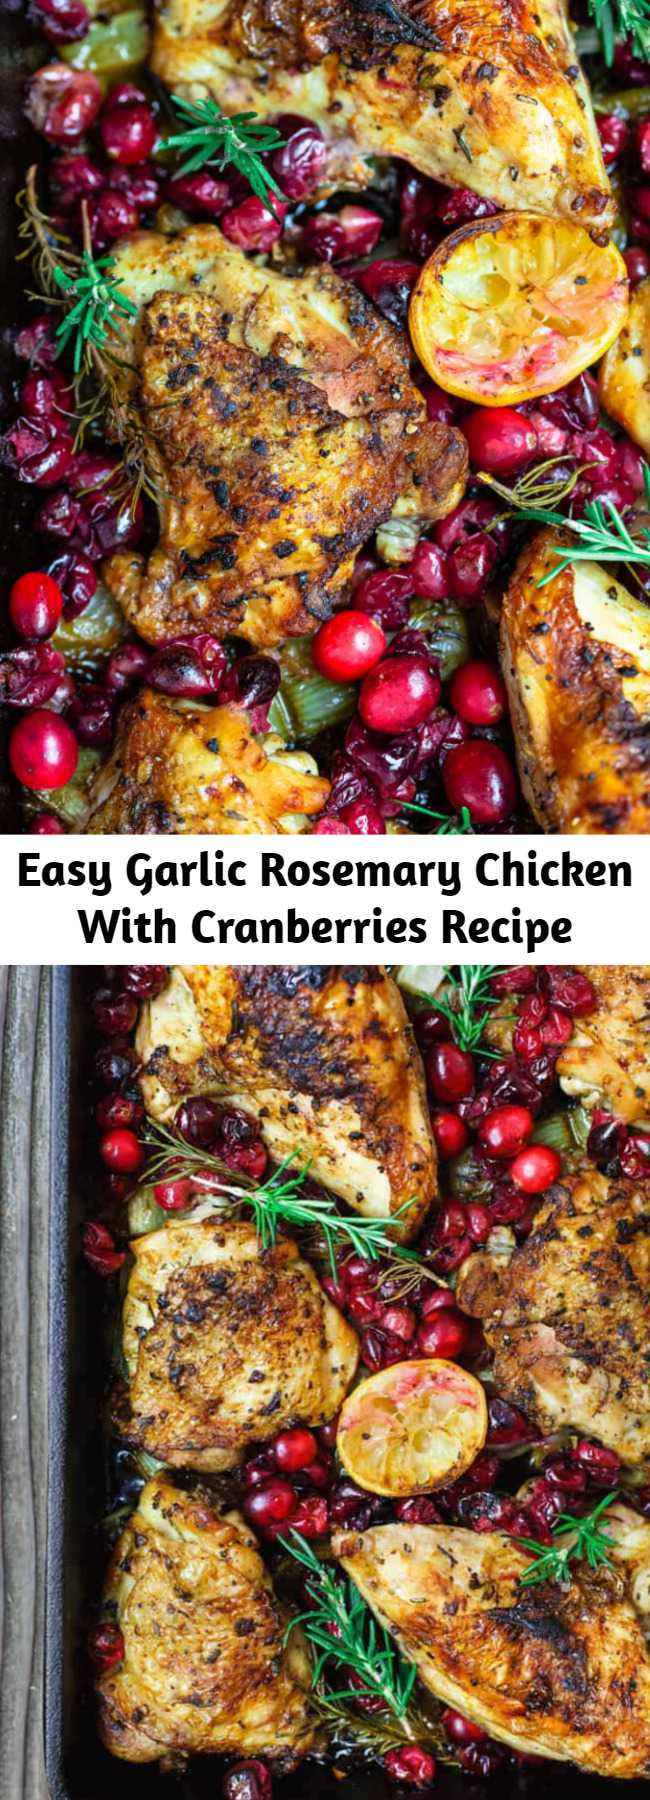 Easy Garlic Rosemary Chicken With Cranberries Recipe - This easy baked cranberry chicken recipe with rosemary is your ticket to a comforting, show-stopping dinner! You'll love the bold flavors from fresh minced garlic, rosemary, and citrus. Fresh cranberries make a festive, luscious and juicy topping. #chicken #christmasdinner #holidaydinner #bakedchicken #roastedchicken #cranberries #cranberry #cranberryrecipes #glutenfreerecipes #roastchicken #bakedchicken #cranberrychicken